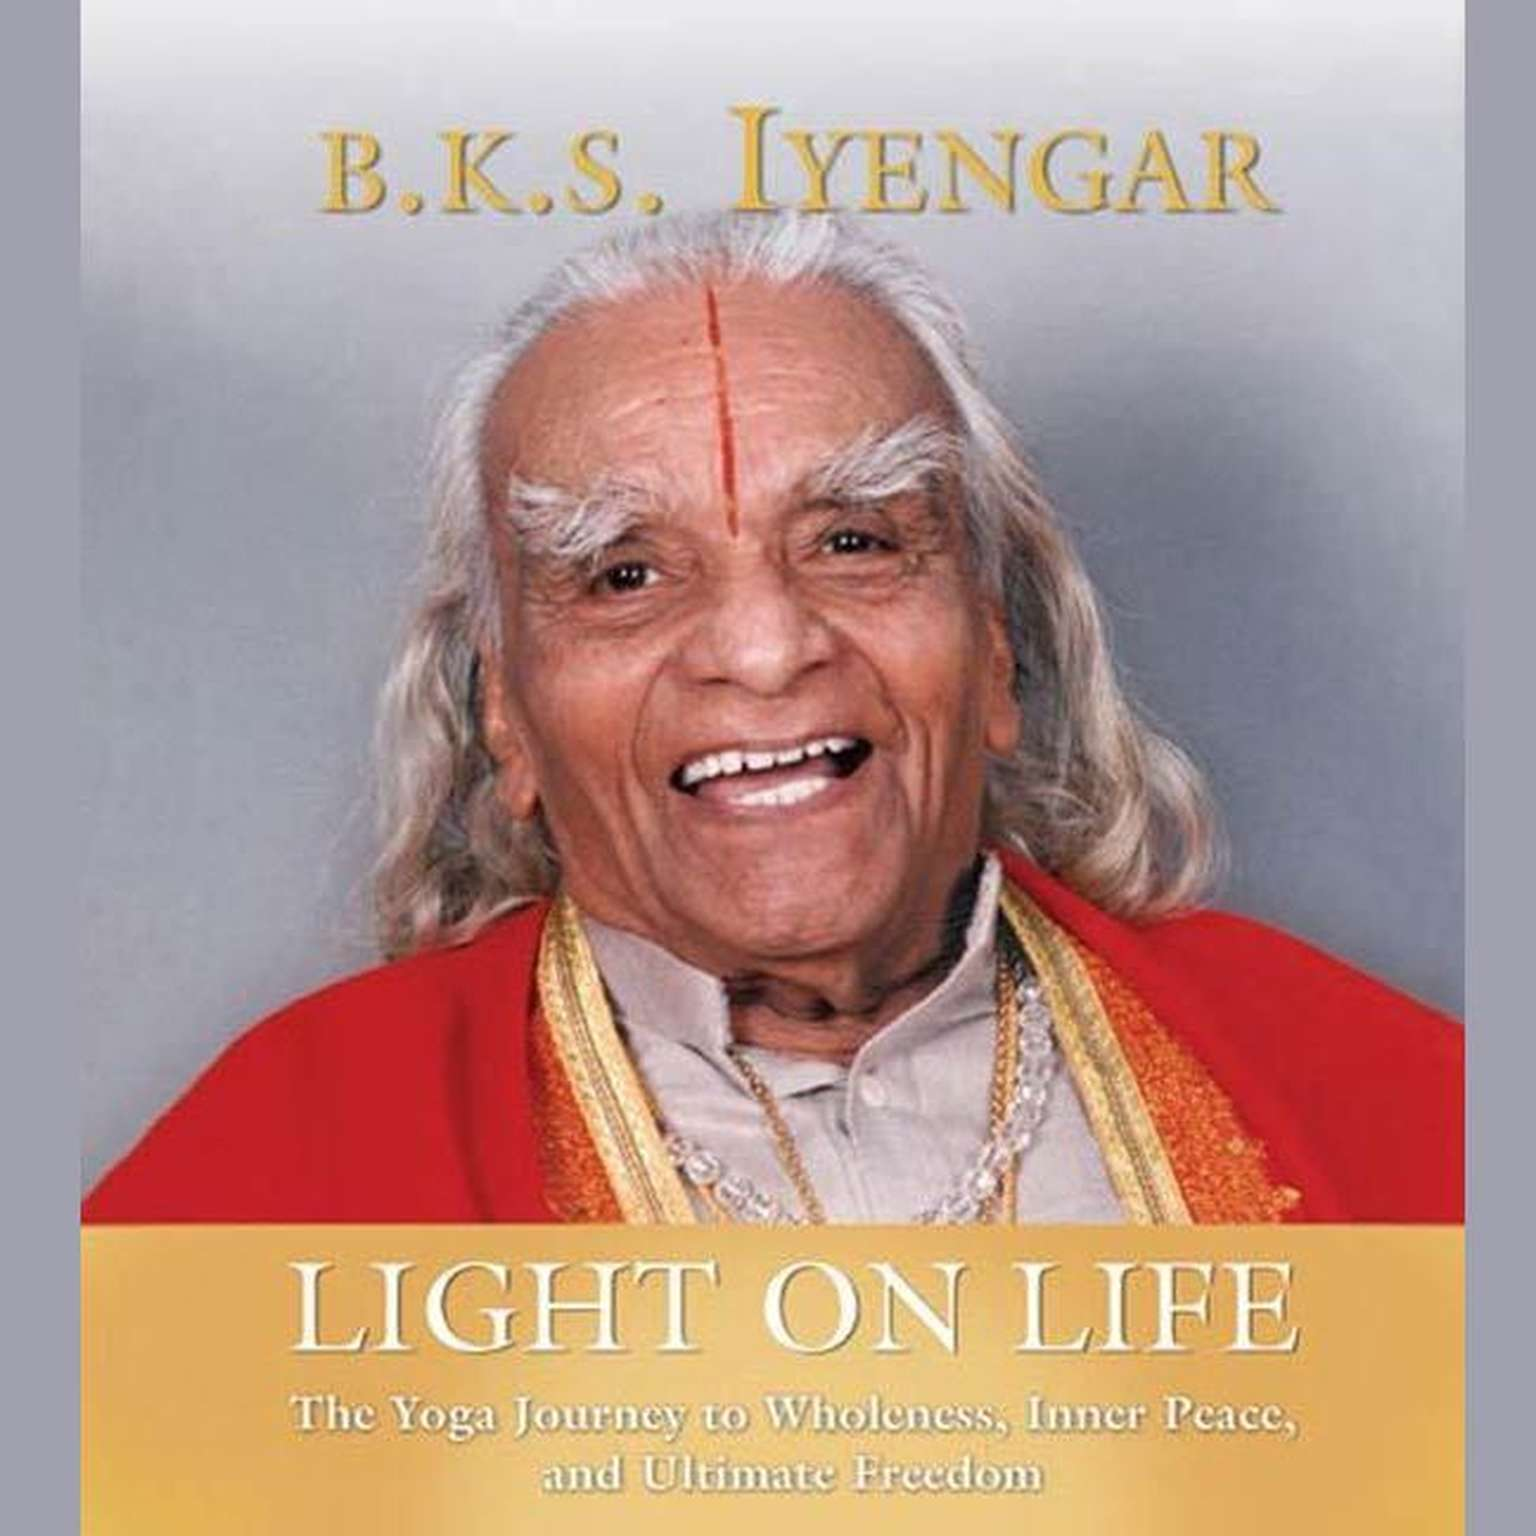 Printable Light on Life: The Yoga Way to Wholeness, Inner Peace, and Ultimate Freedom Audiobook Cover Art